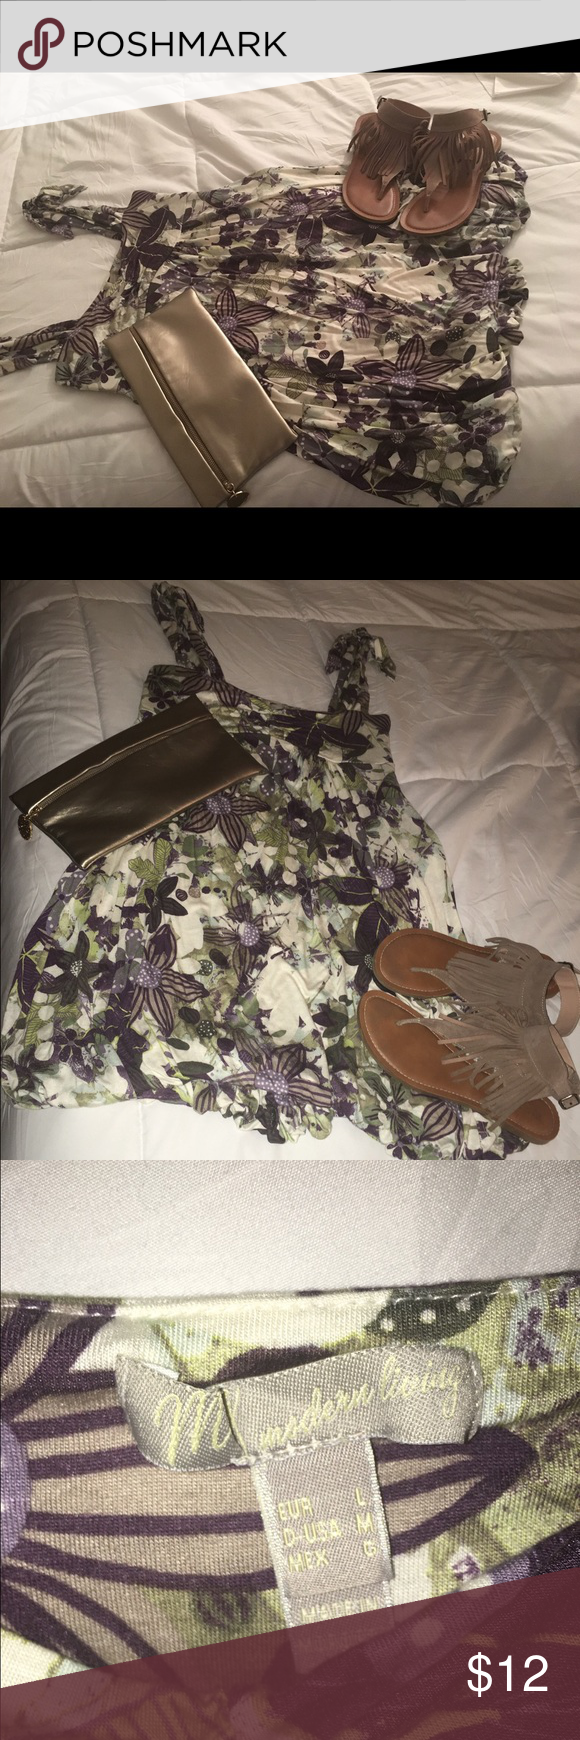 Beautiful flowery print bubble dress. Short bubble hem dress. Flower print. Adjustable tie straps. Really cute for errand runs or date night with your honey. Pair with some cute sandals or heels and denim jacket and be on your way!  MNG  Dresses Mini